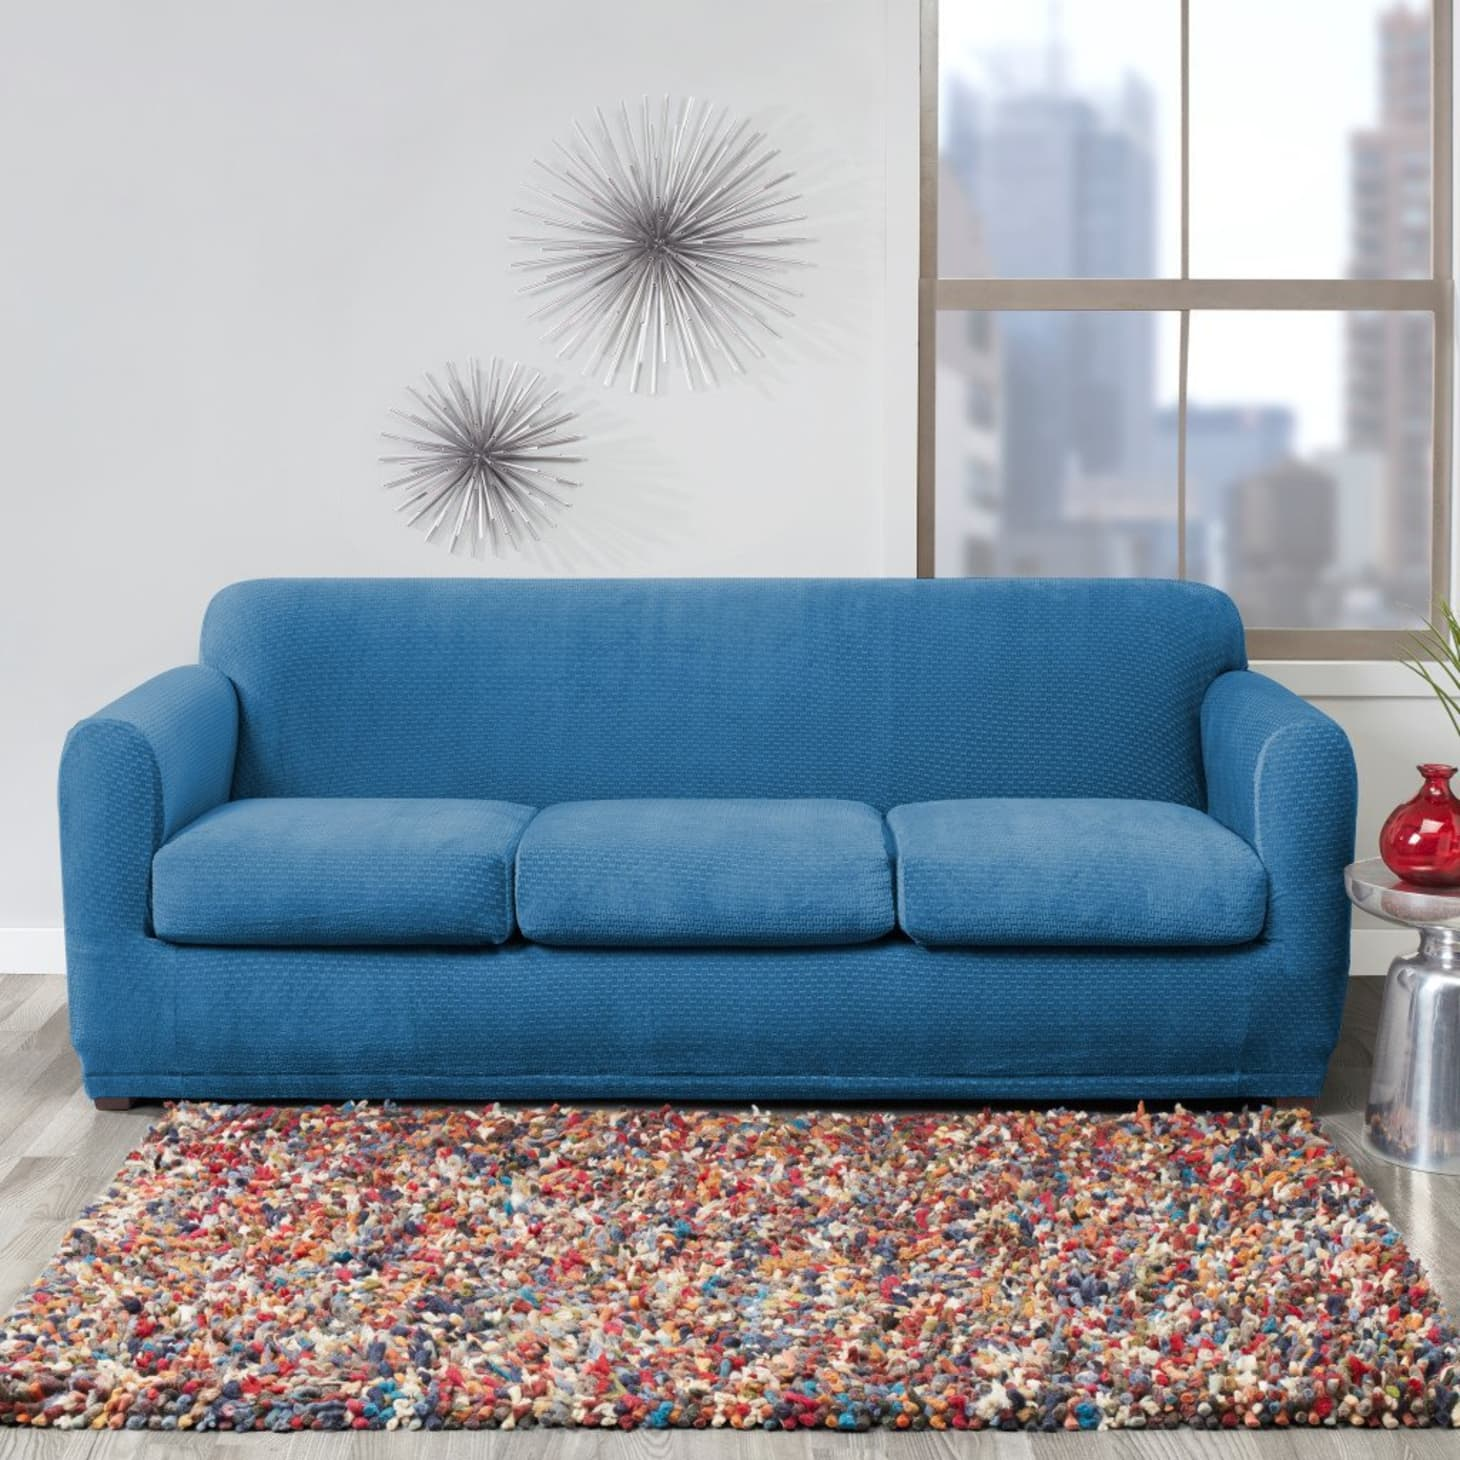 Pleasing The Best Slipcovers For Your Couch Apartment Therapy Short Links Chair Design For Home Short Linksinfo